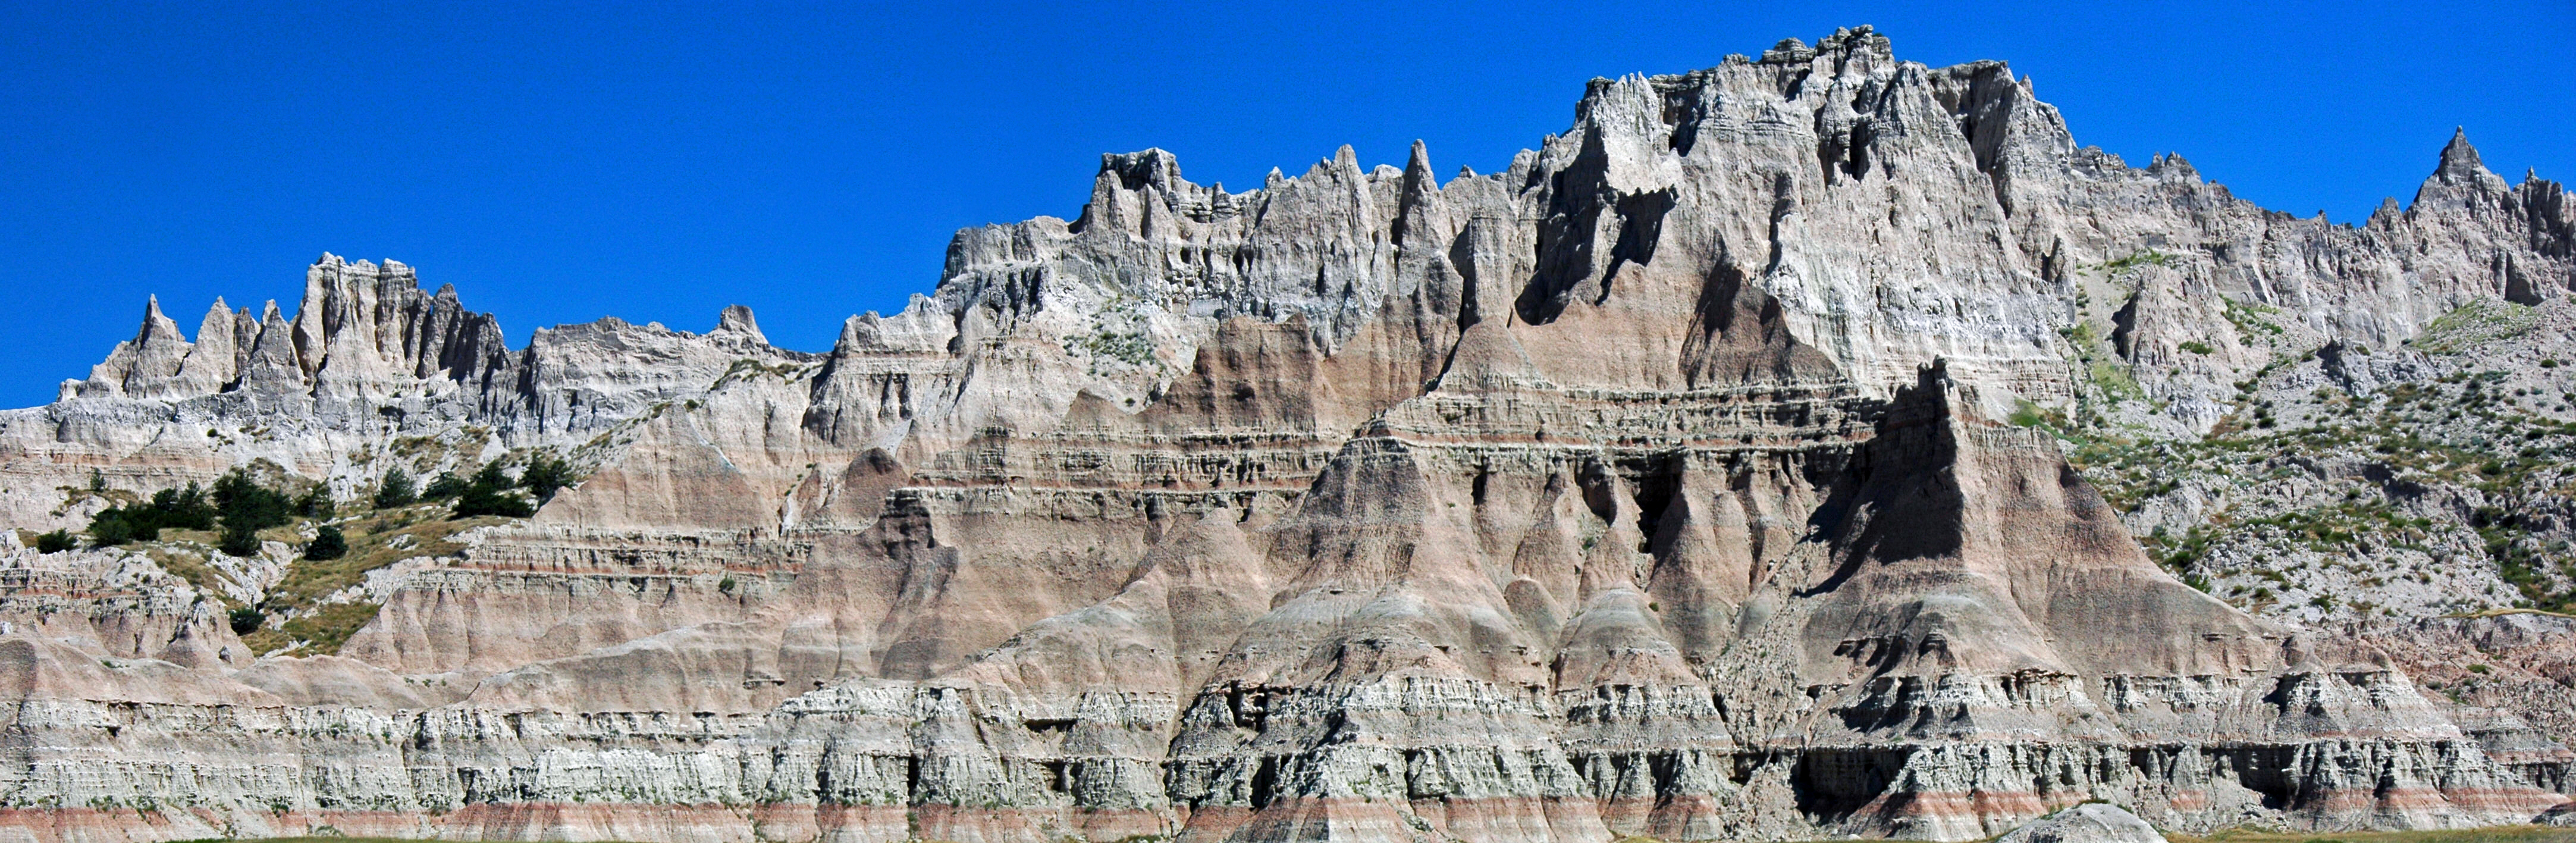 White River Badlands of South Dakota panorama